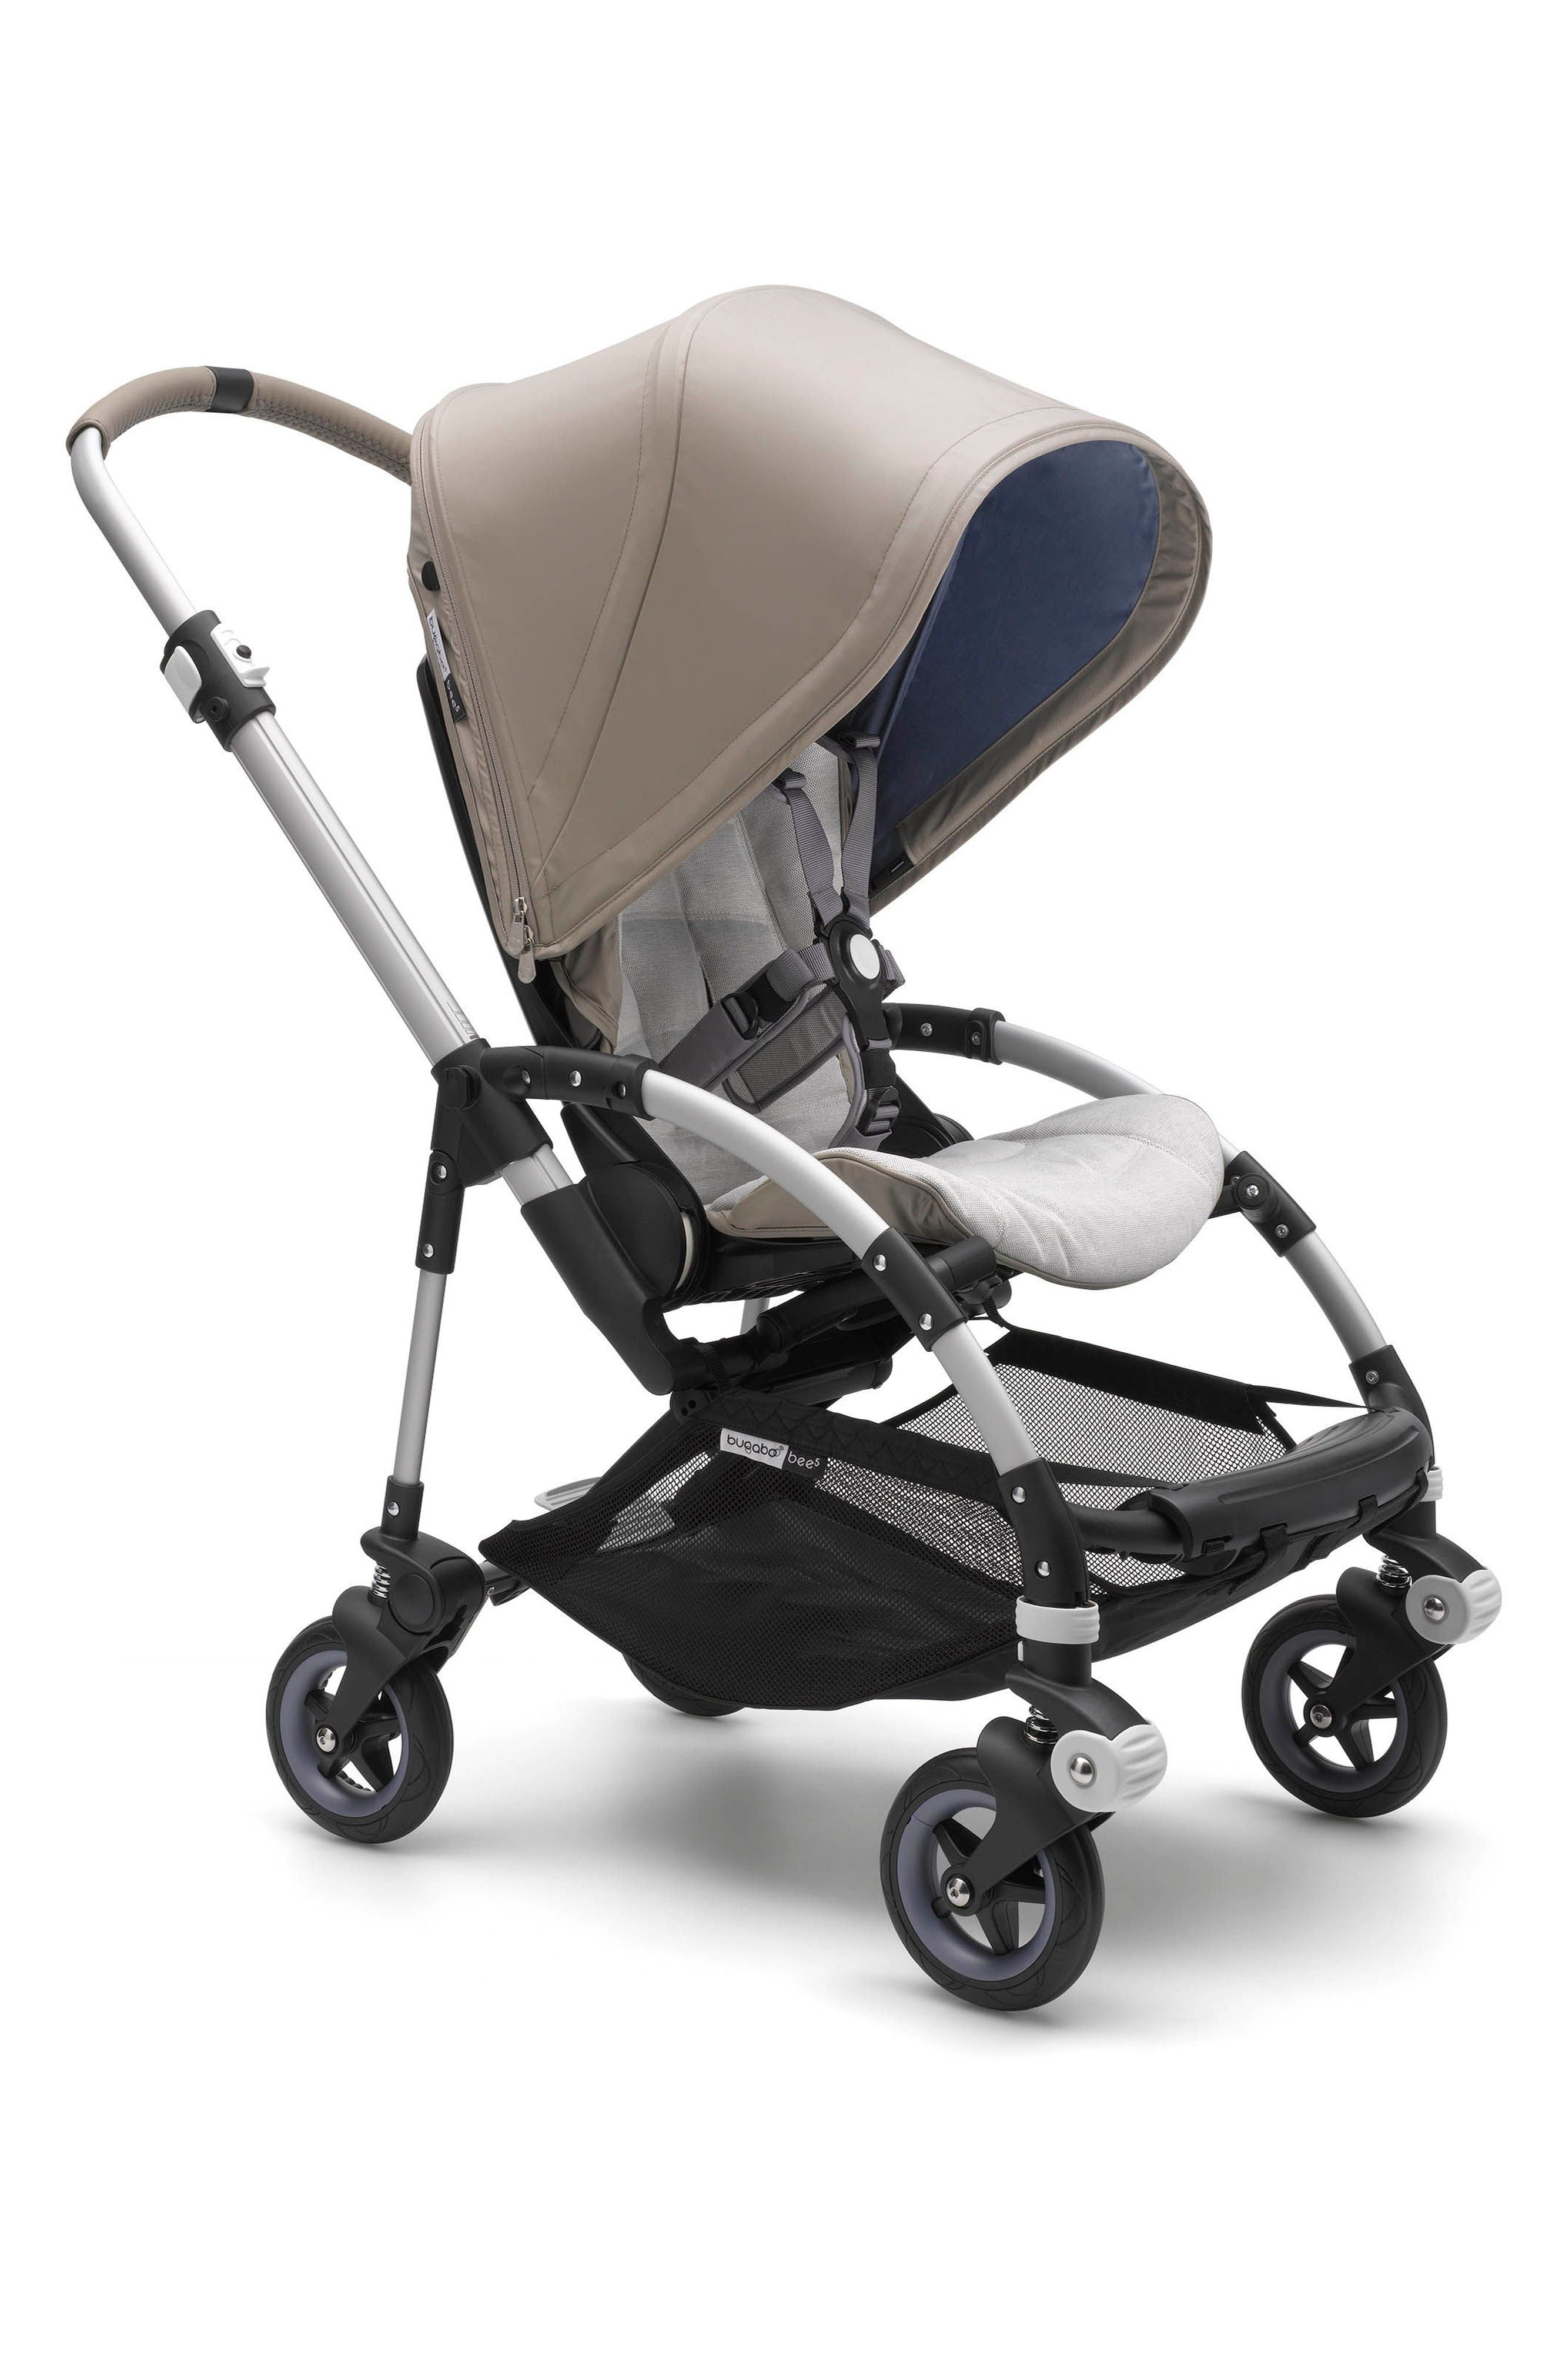 Alternate Image 1 Selected - Bugaboo Bee5 Two-Tone Taupe Limited Edition Stroller with Lavender Accents